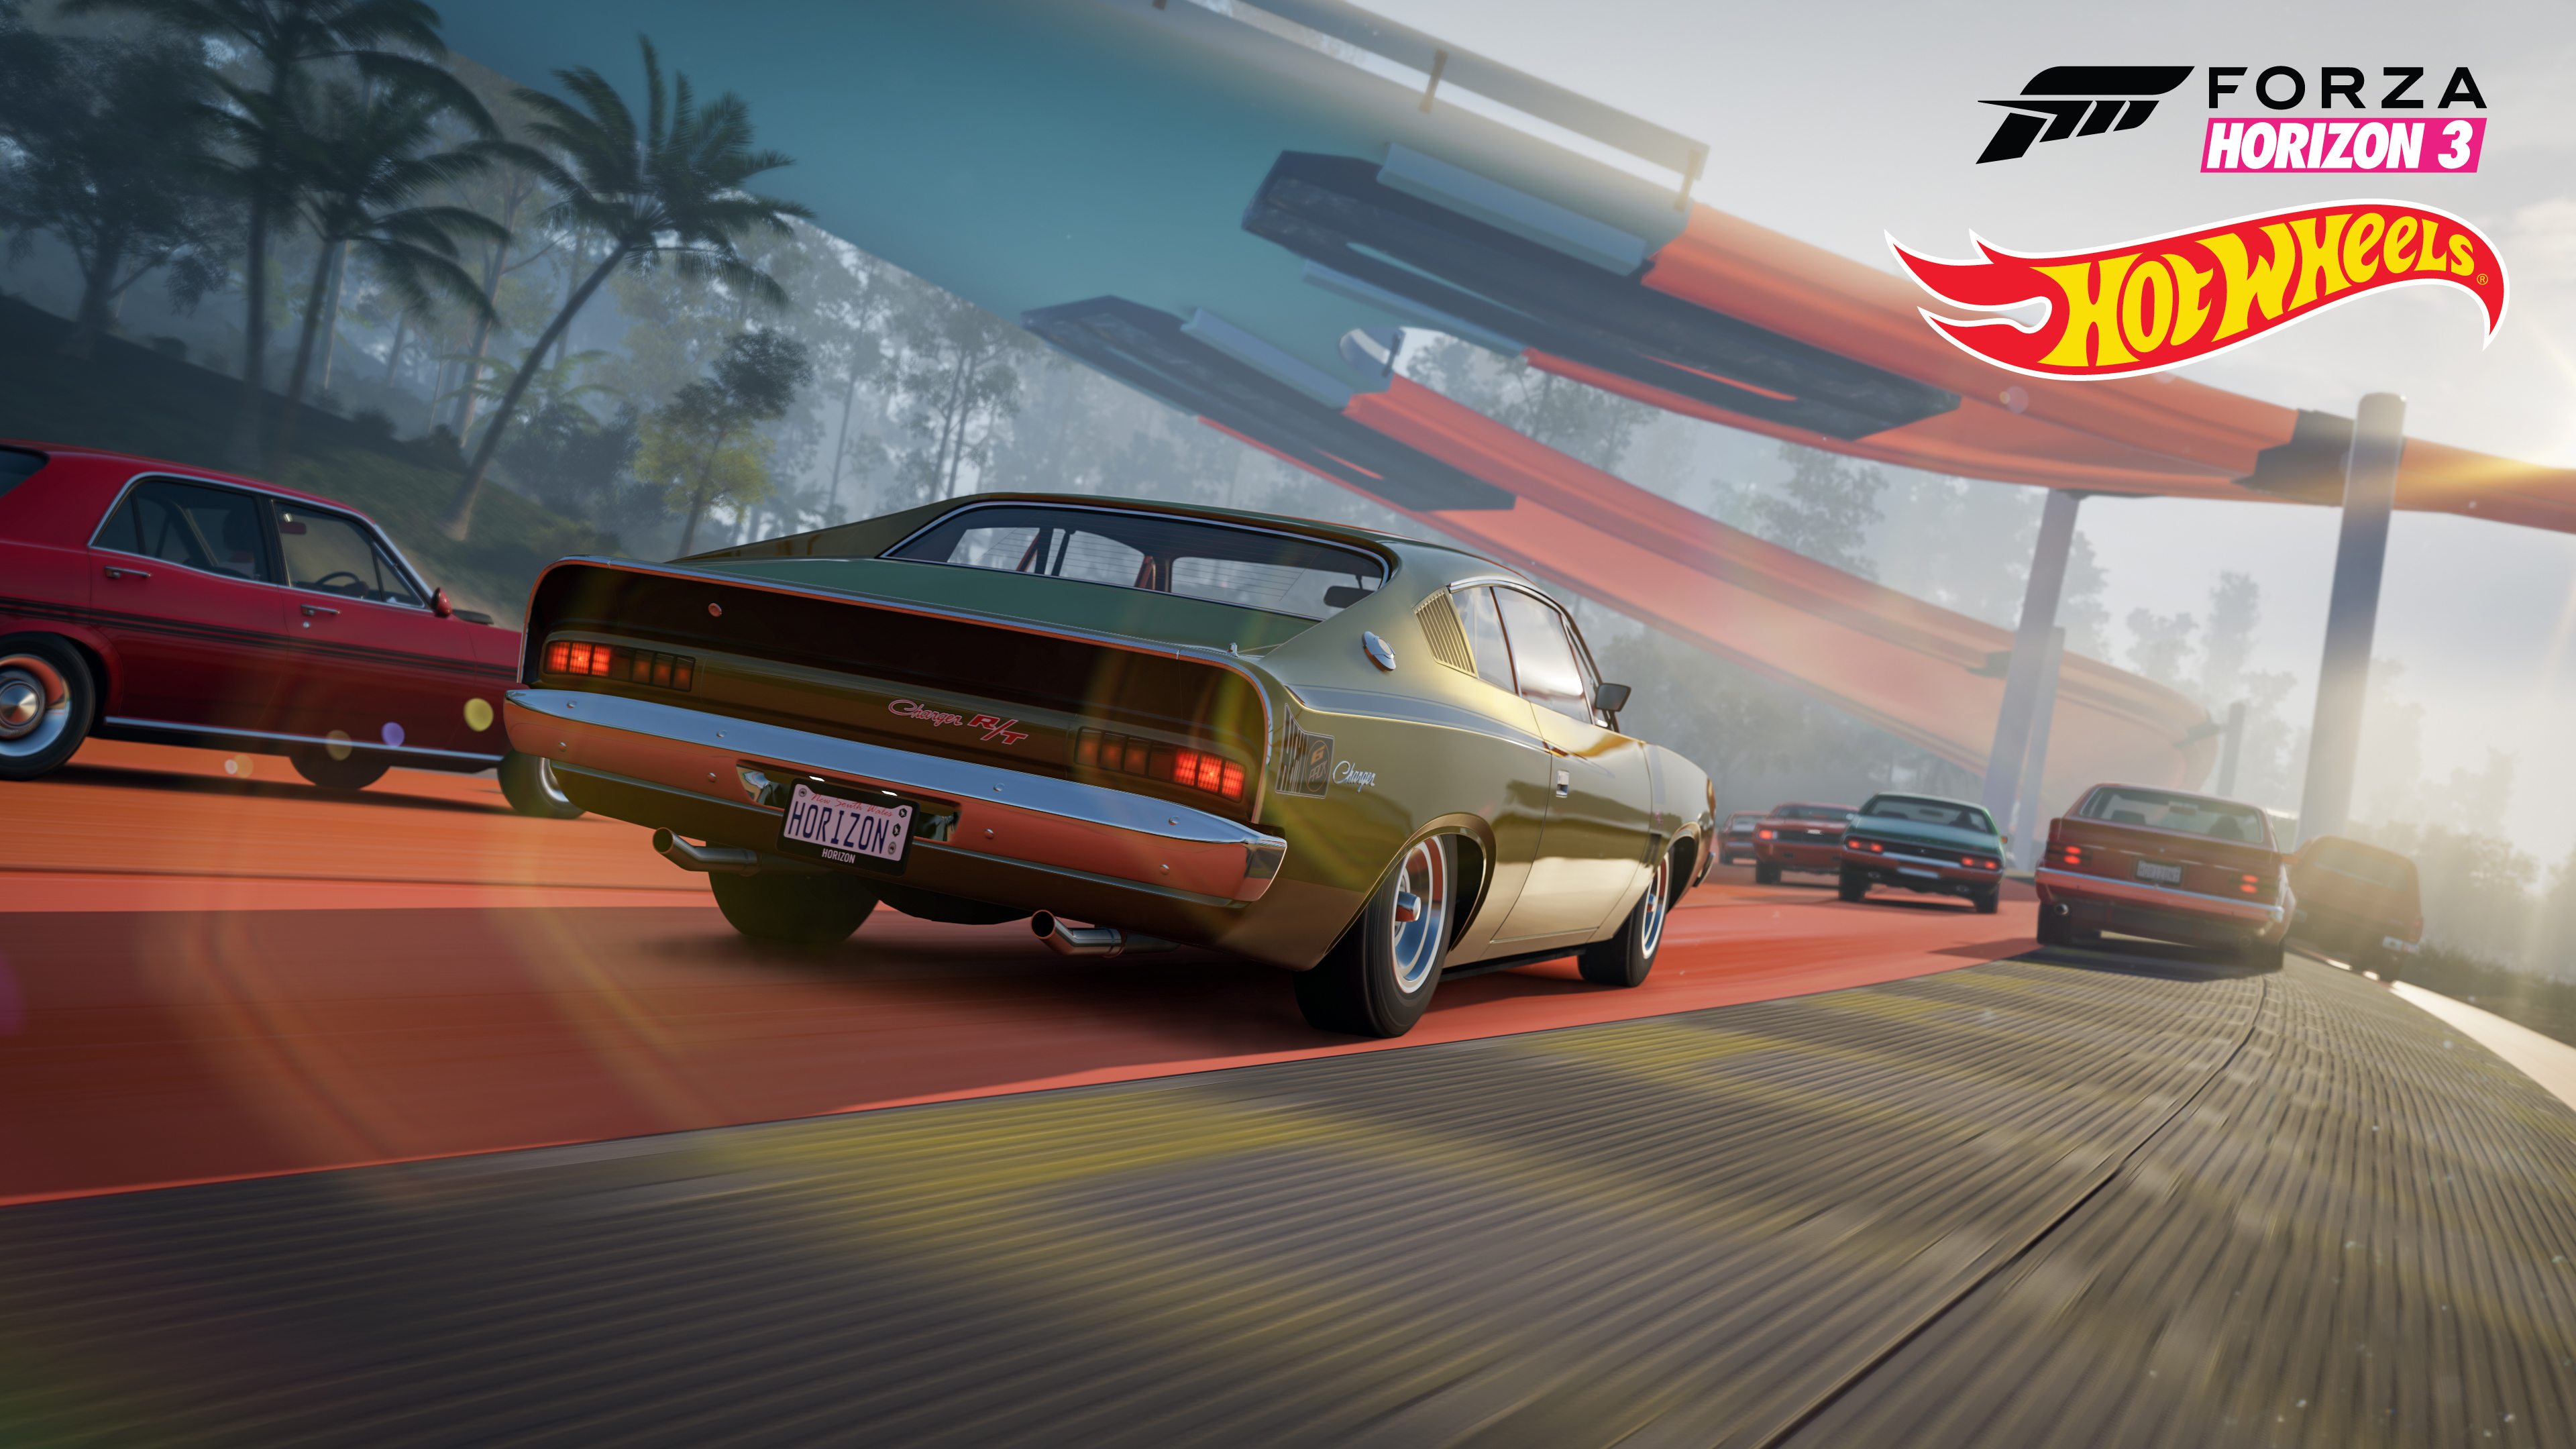 Forza Horizon 3's Hot Wheels Expansion Is Here! - Xbox Wire